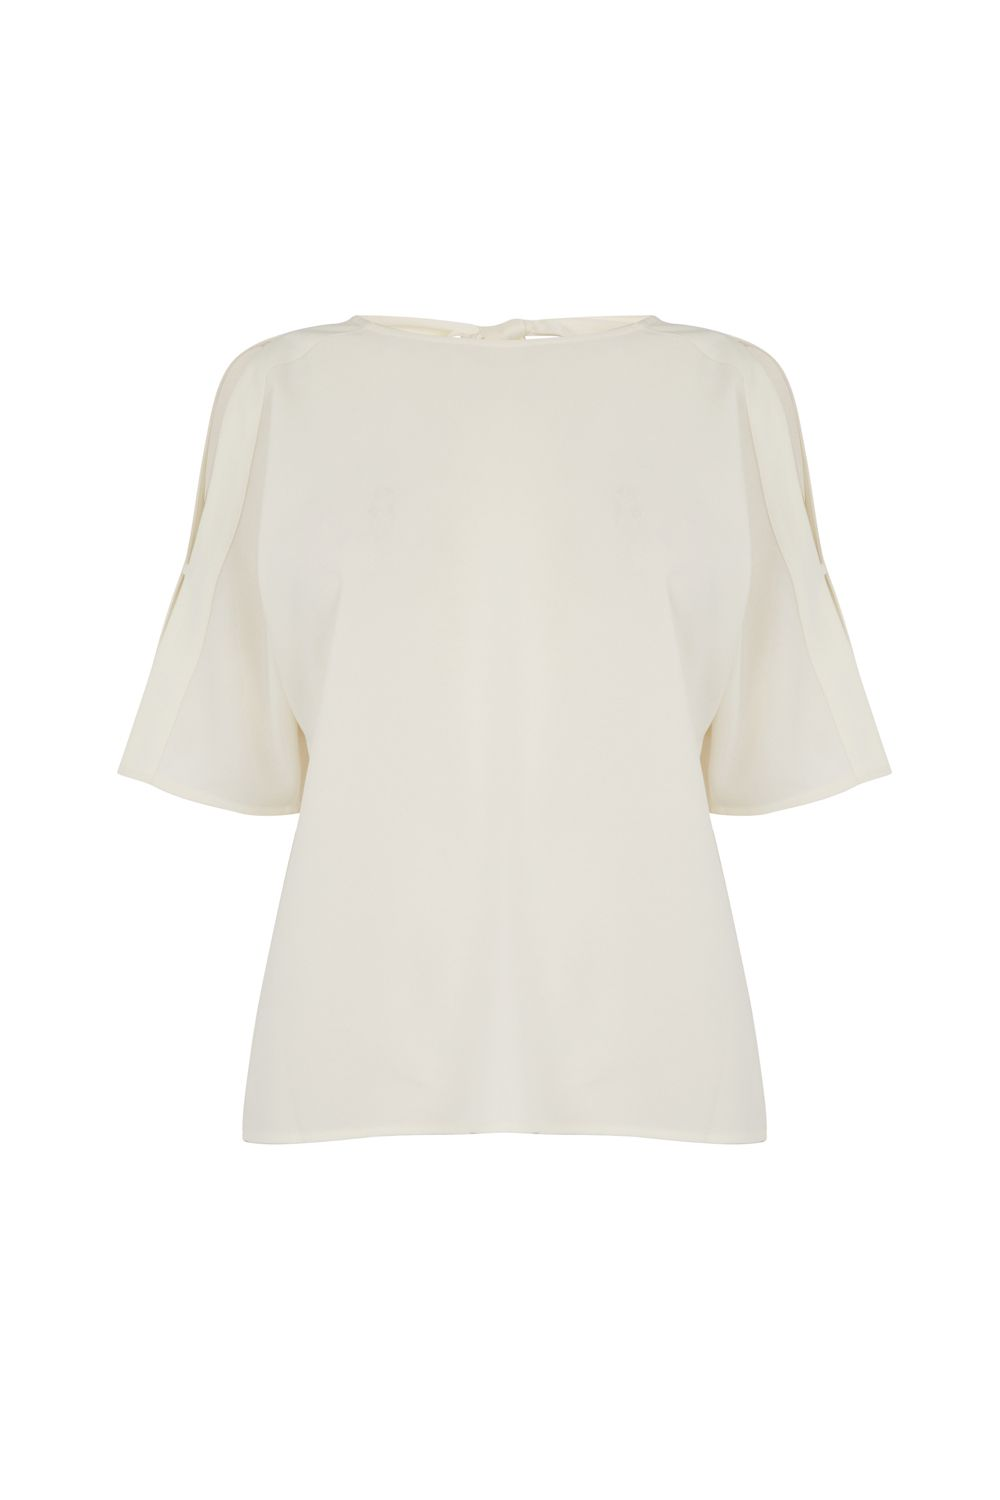 Warehouse Tie Back Sleeve Detail Top, Cream